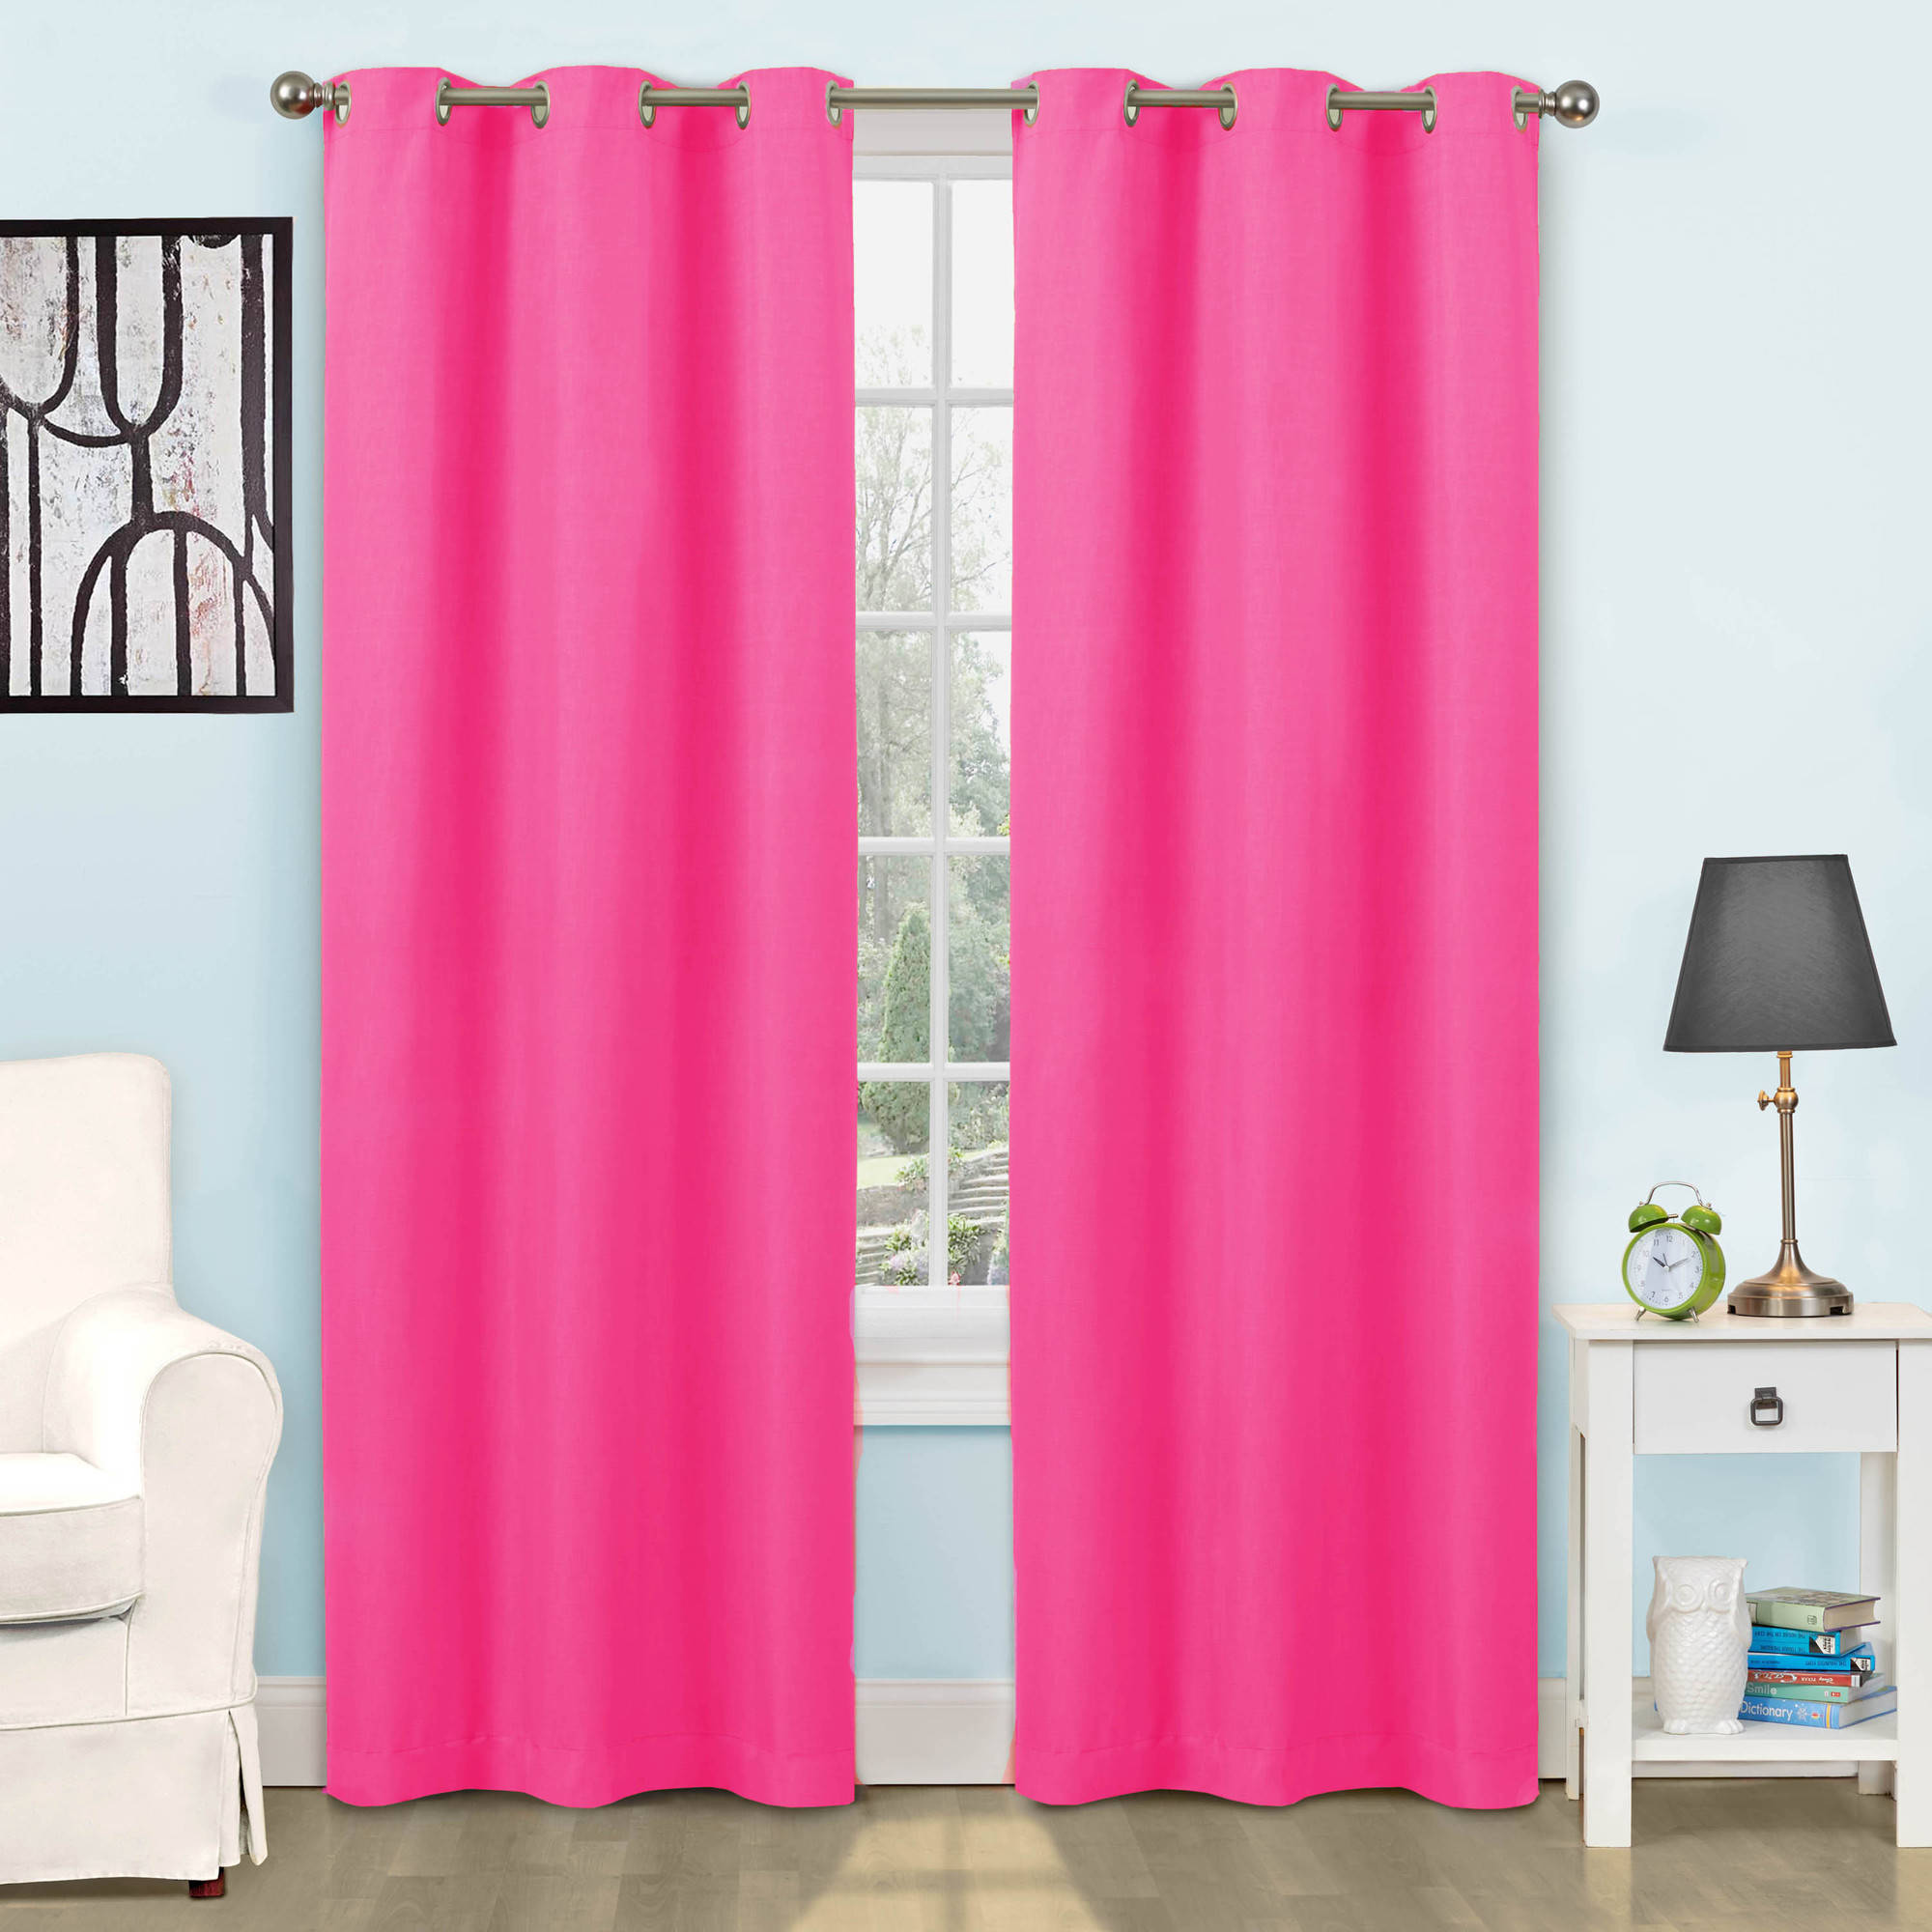 Window Curtains At Target. Choose Kids Bedroom Curtains In